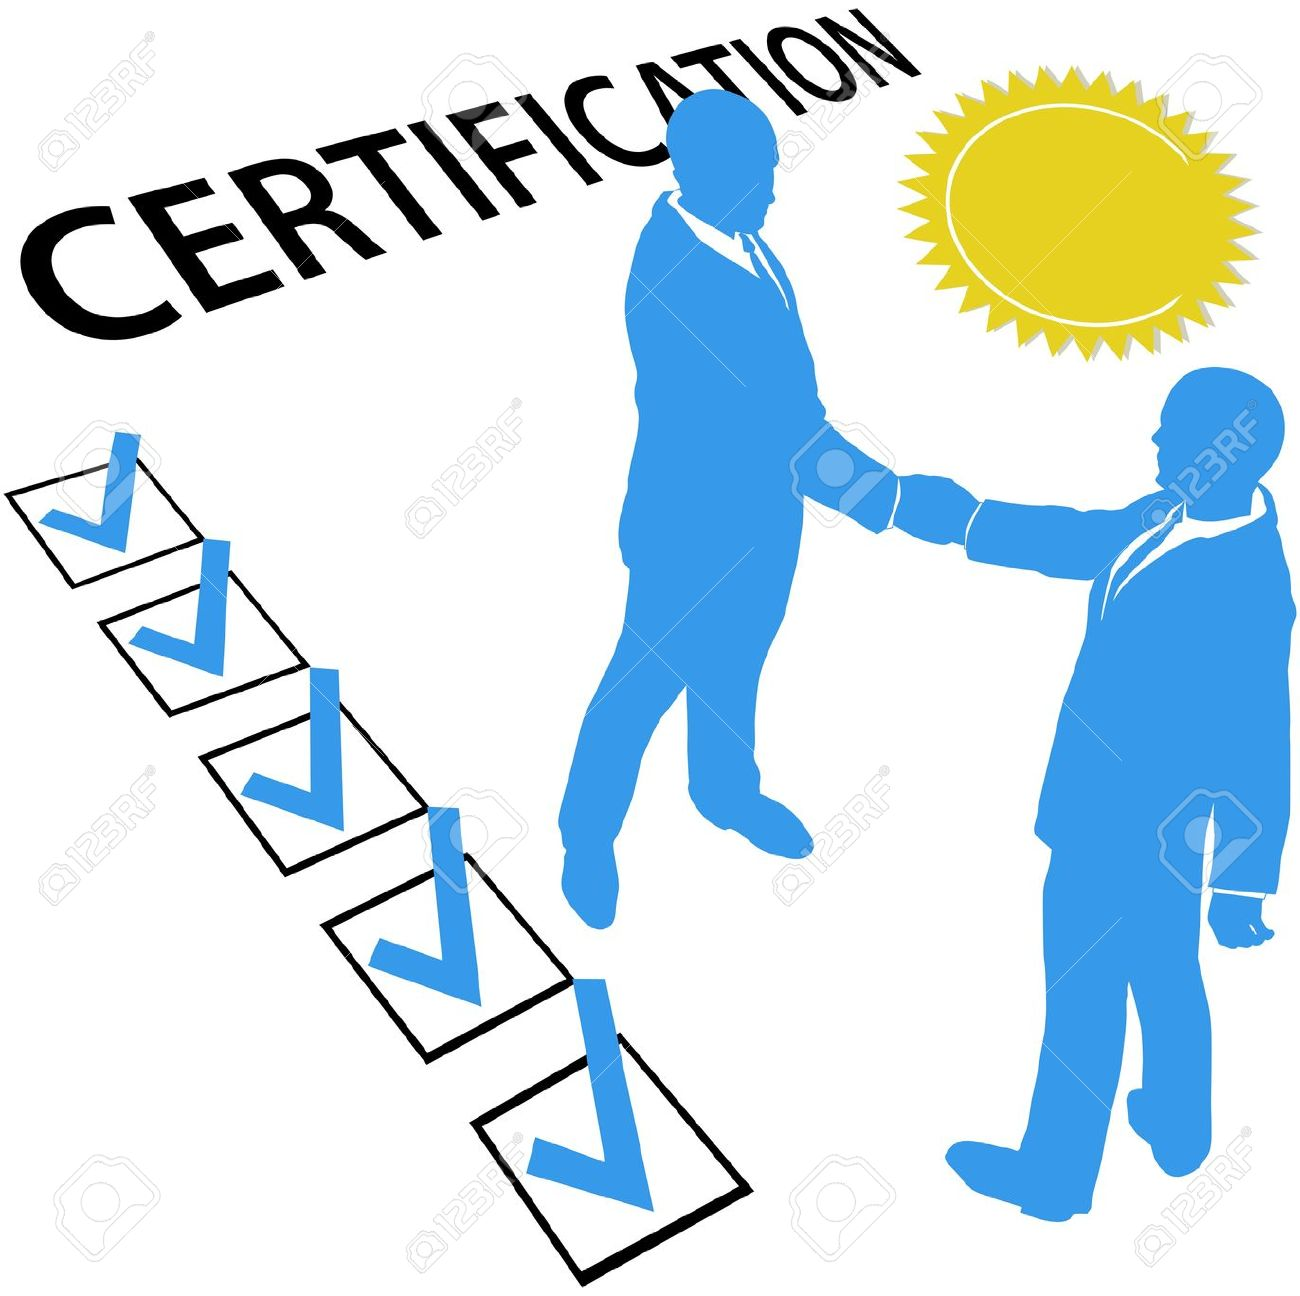 These Are Top 10 It Certification Courses In Demand 1 The Microsoft